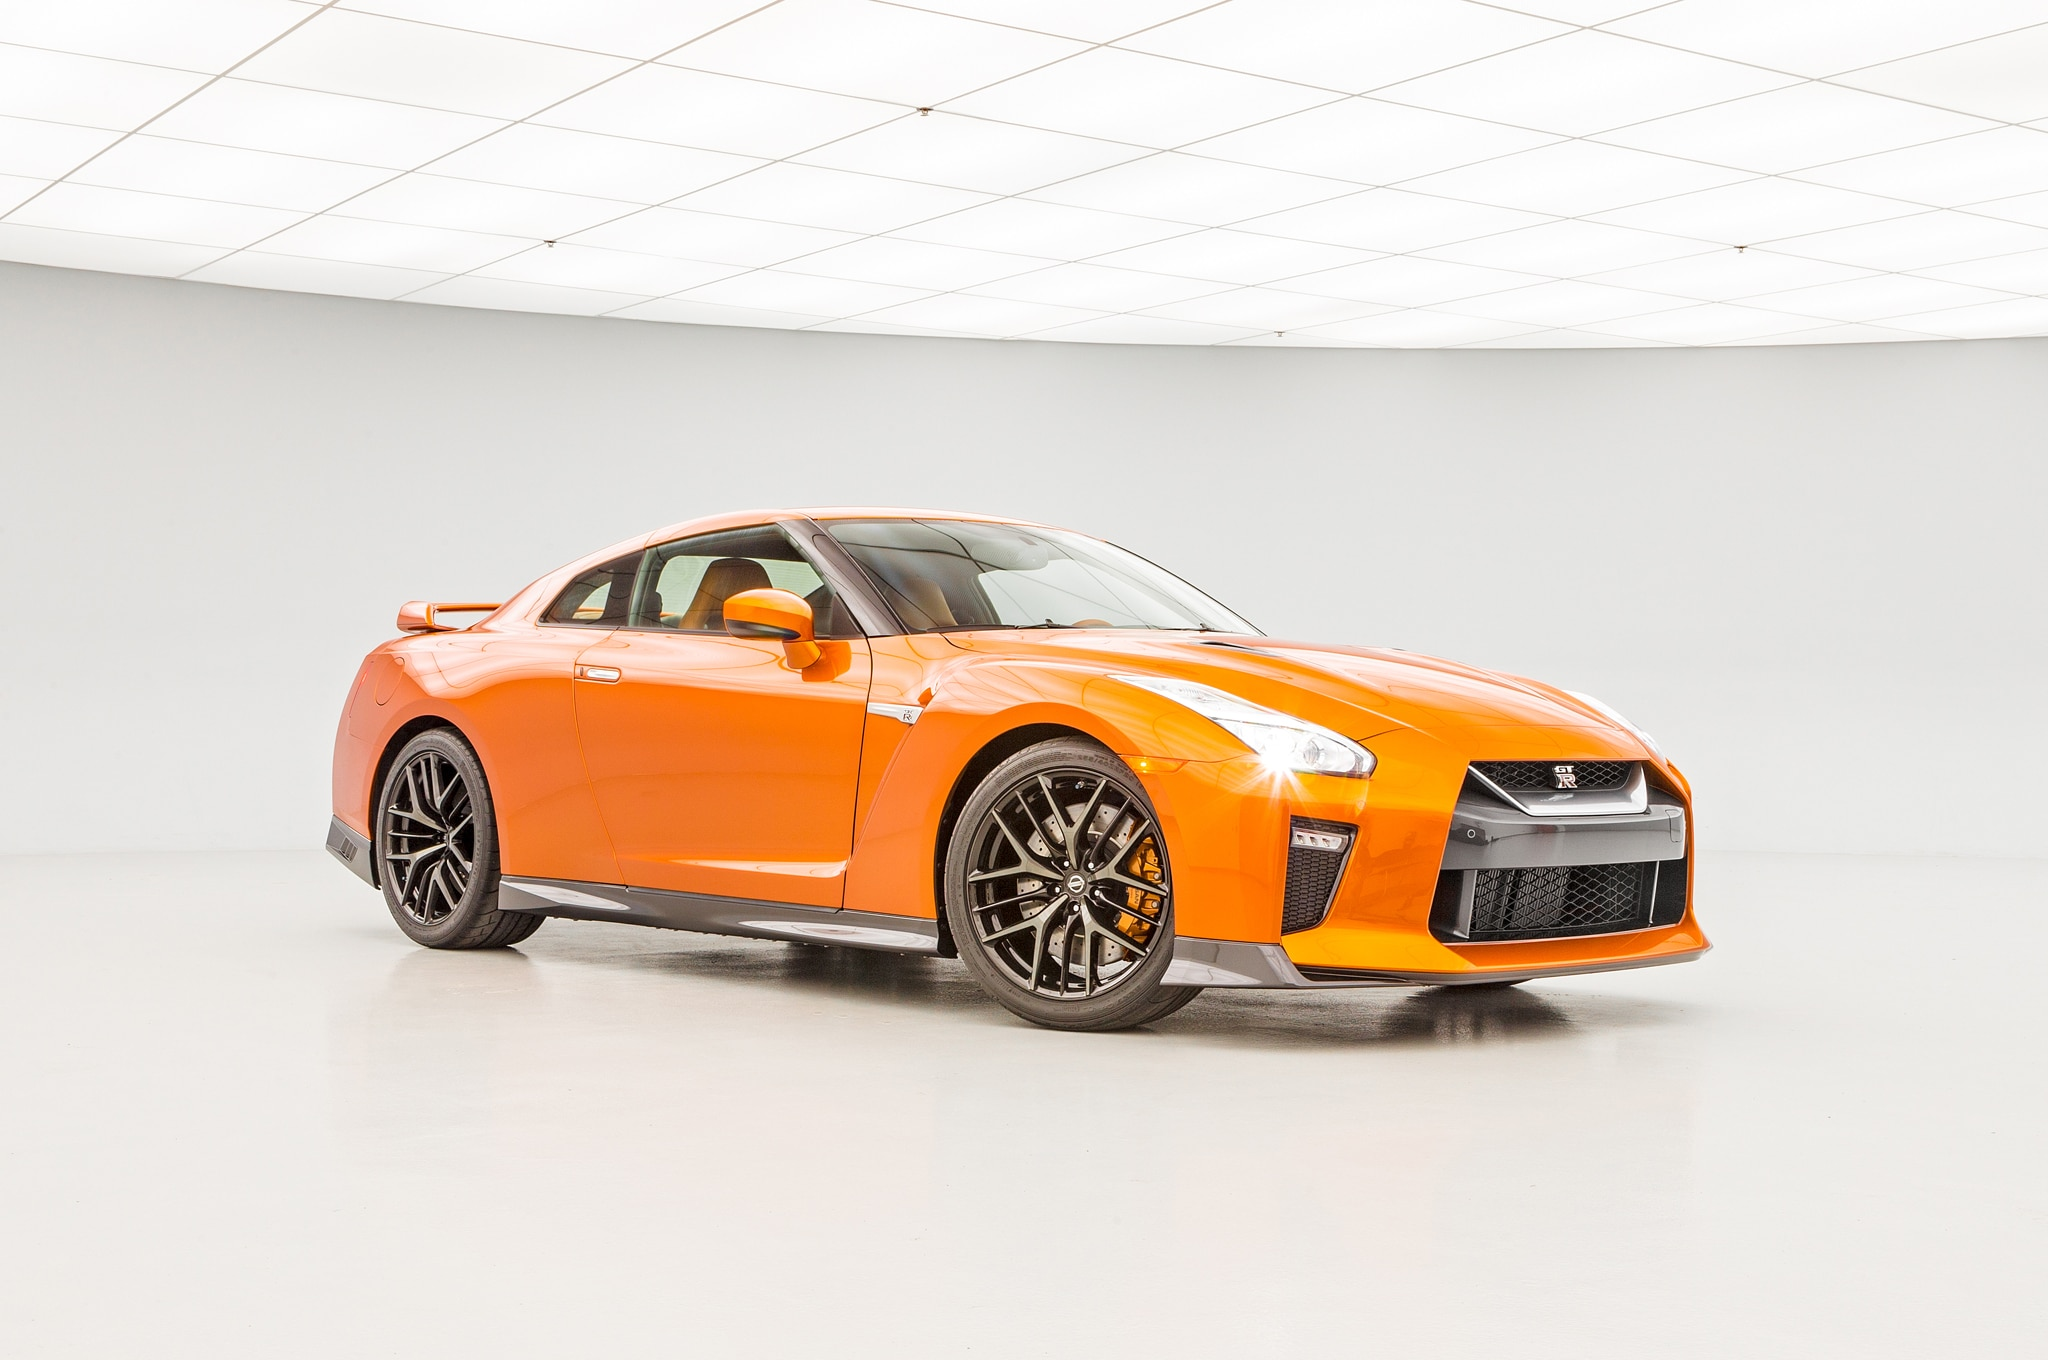 2017 Nissan Gt R Msrp >> 2017 Nissan GT-R: The Refreshed R35.5 Debuts in New York